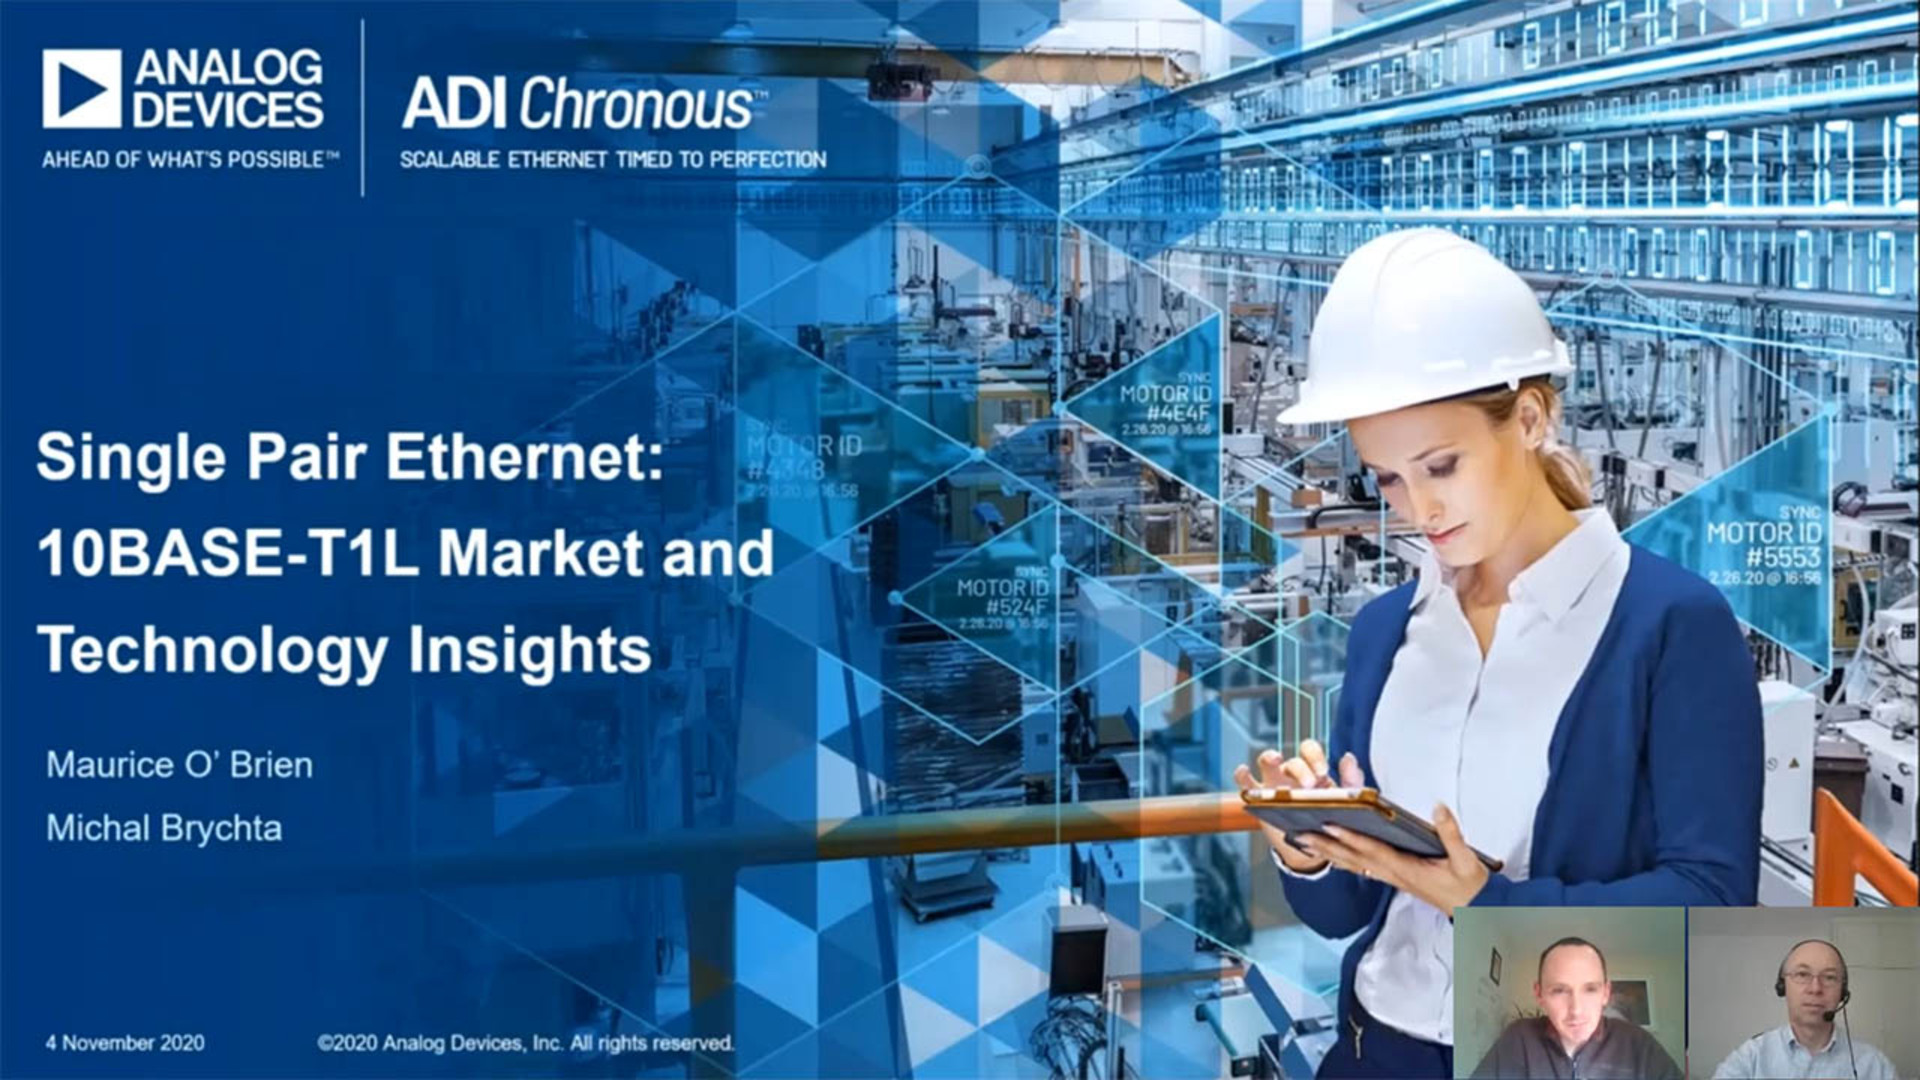 Single Pair Ethernet: 10BASE-T1L Market and Technology Insights